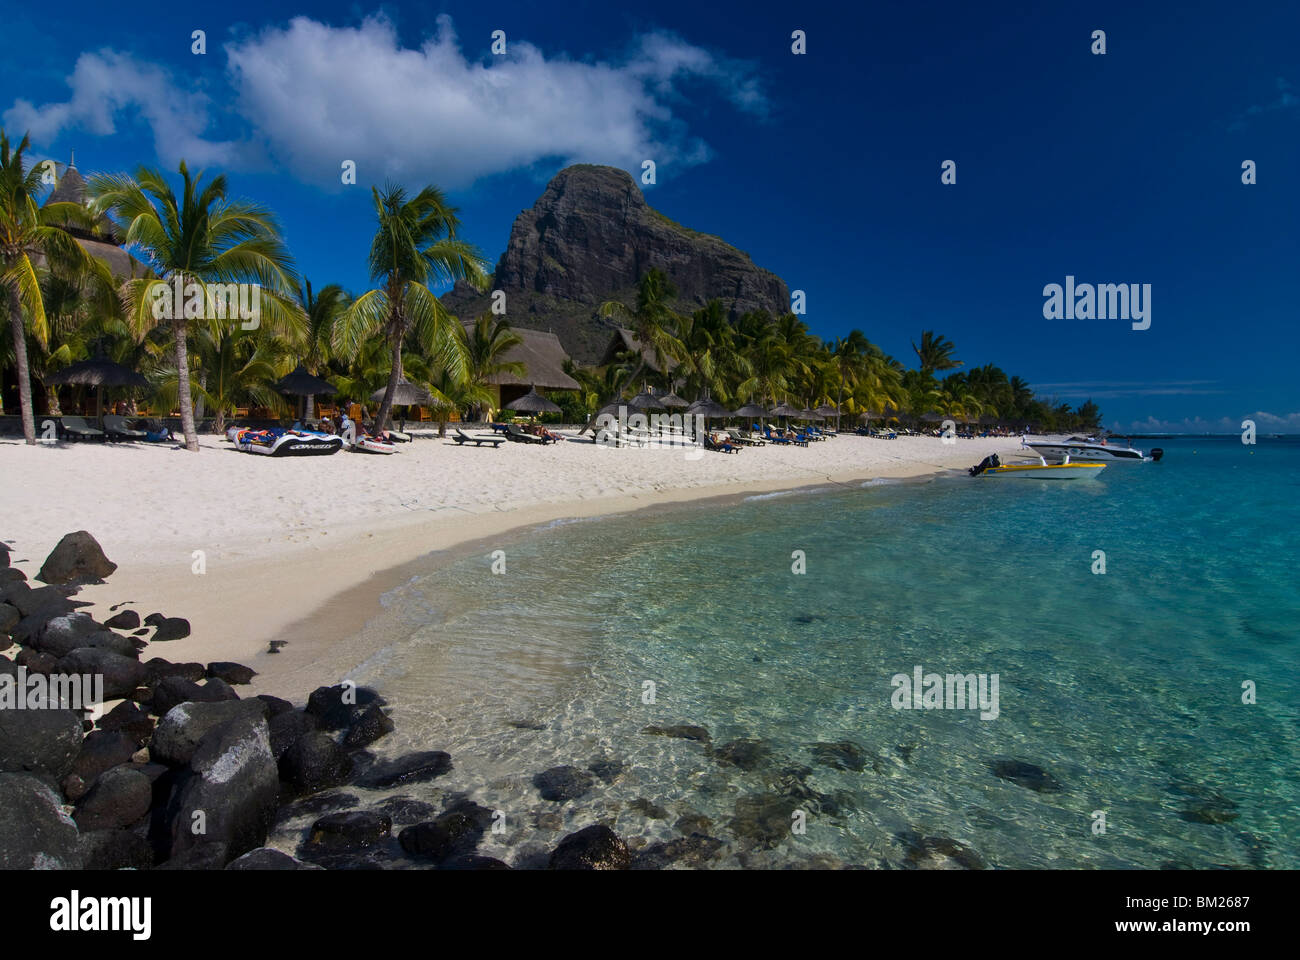 Sun loungers on the beach and Mont Brabant (Le Morne Brabant), UNESCO World Heritage Site, Mauritius, Indian Ocean - Stock Image